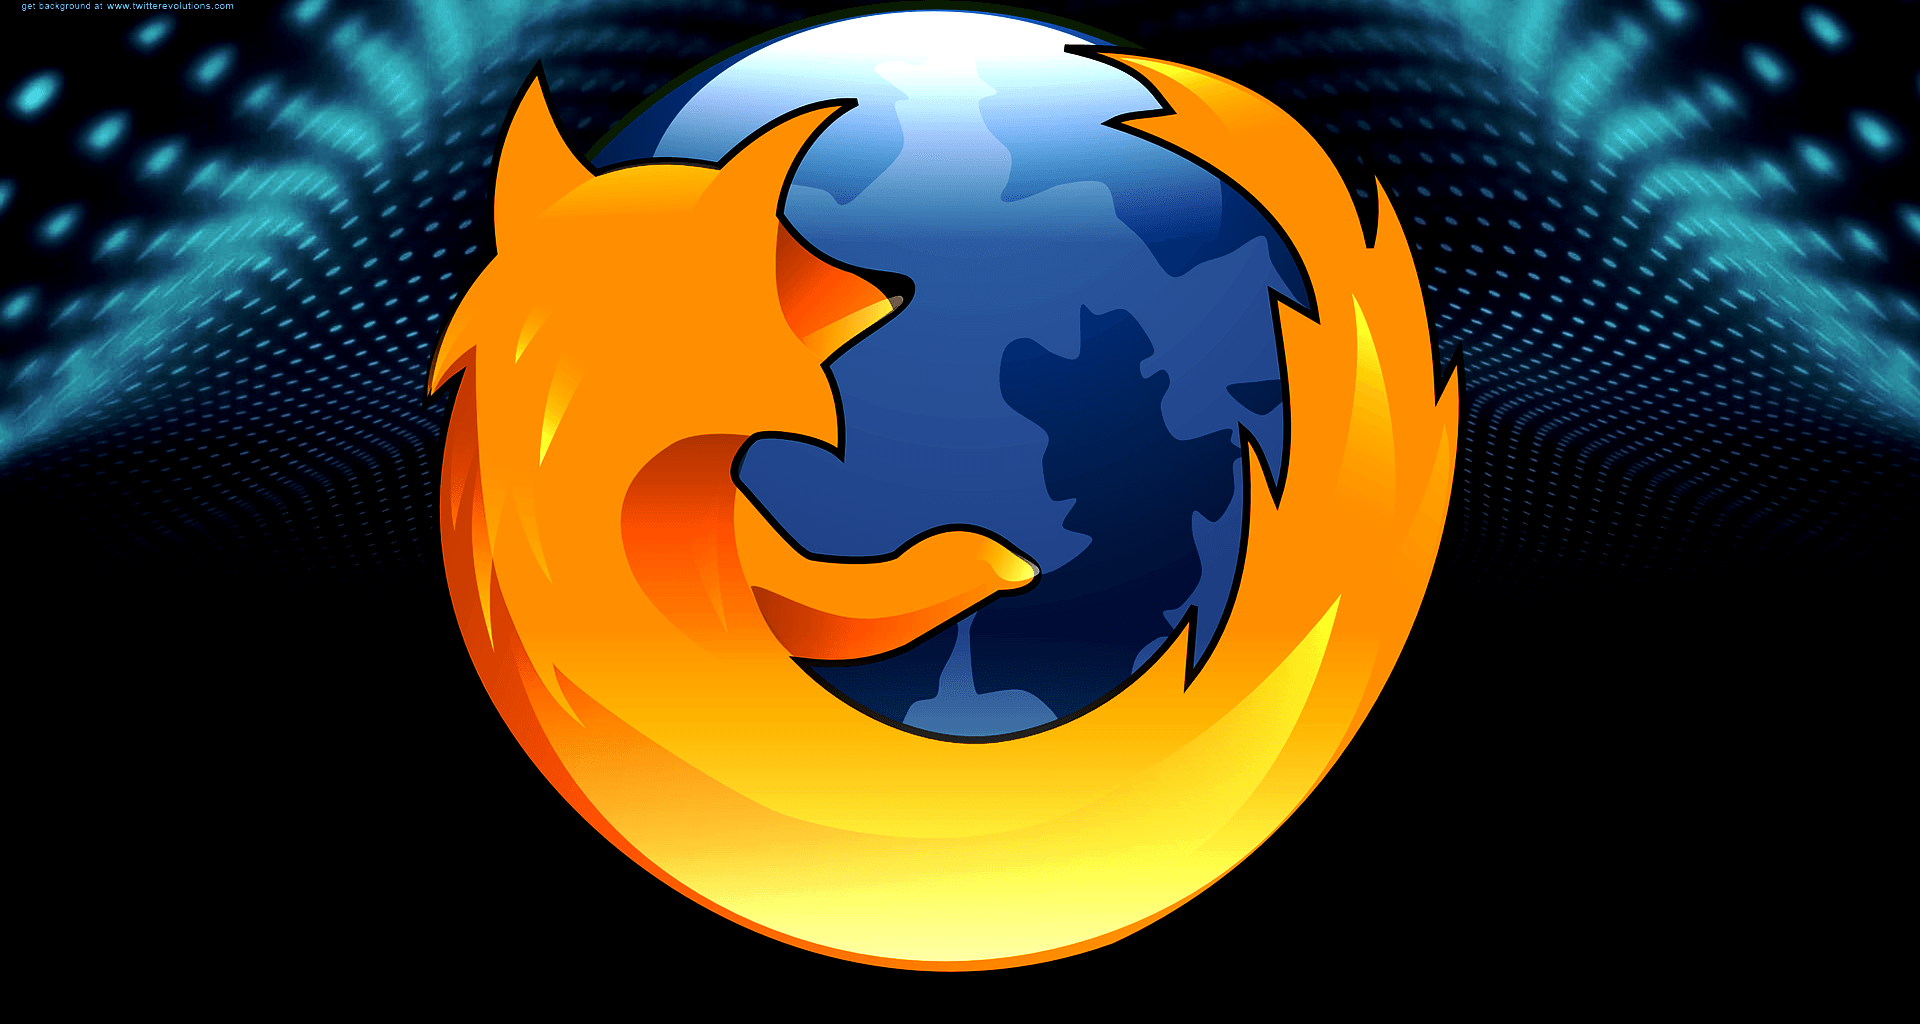 Firefox 63 for Windows, Mac, Linux & Android Is Now